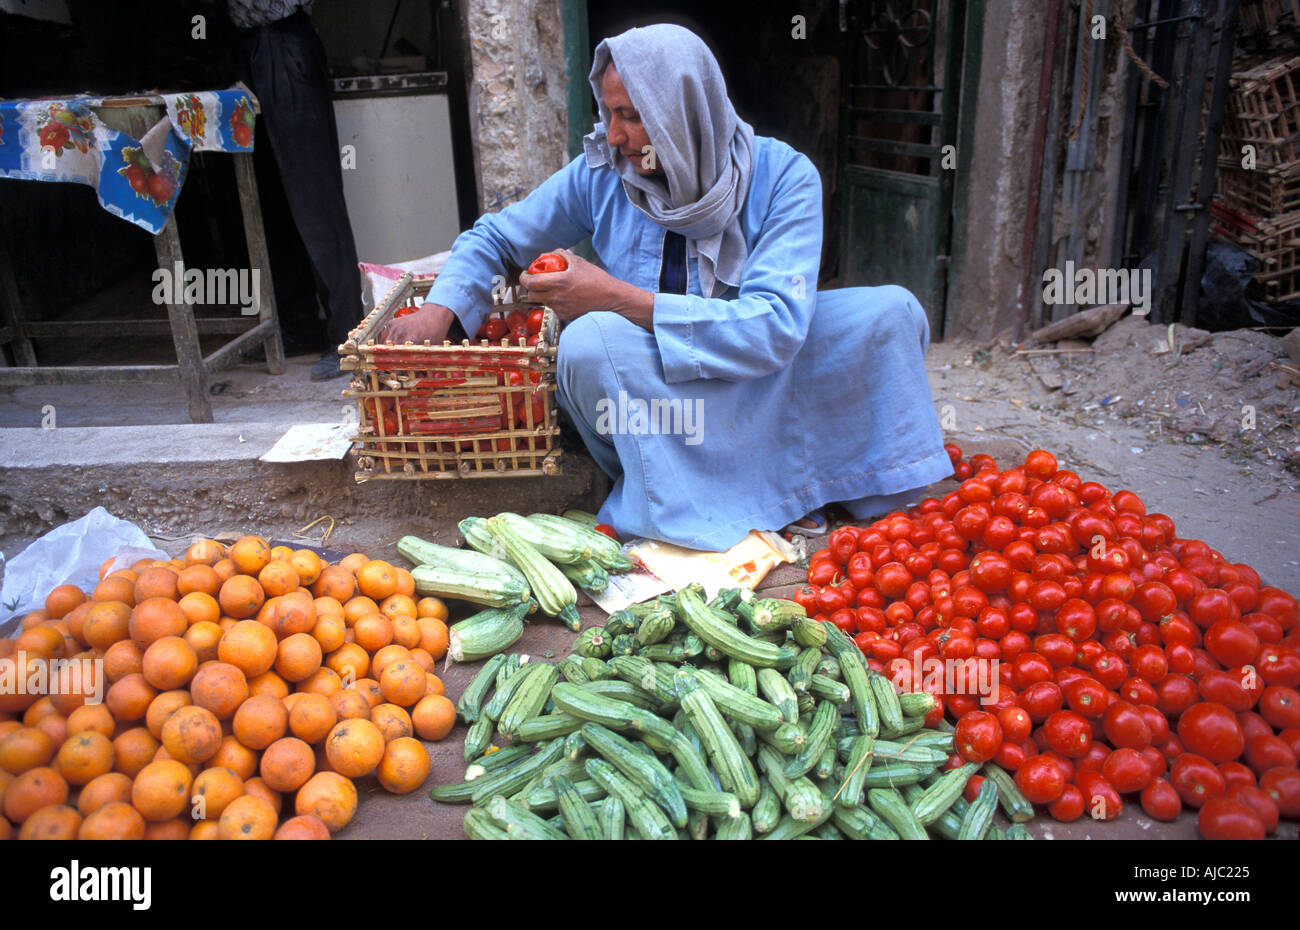 Fruit and vegetable vendor at his stall Luxor s street market Egypt Stock Photo